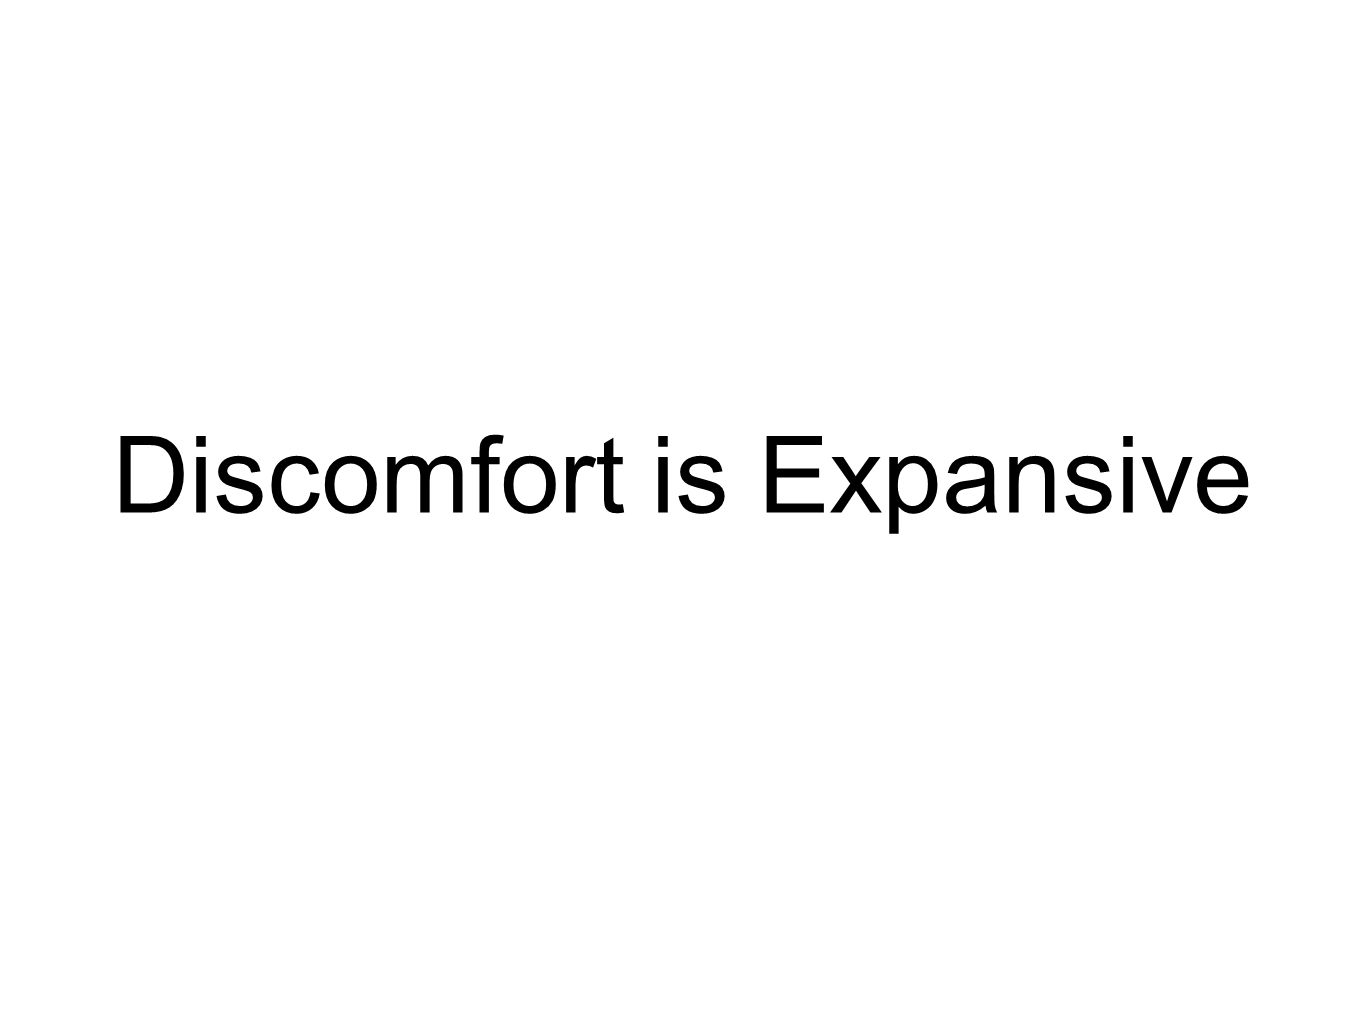 Discomfort is Expansive